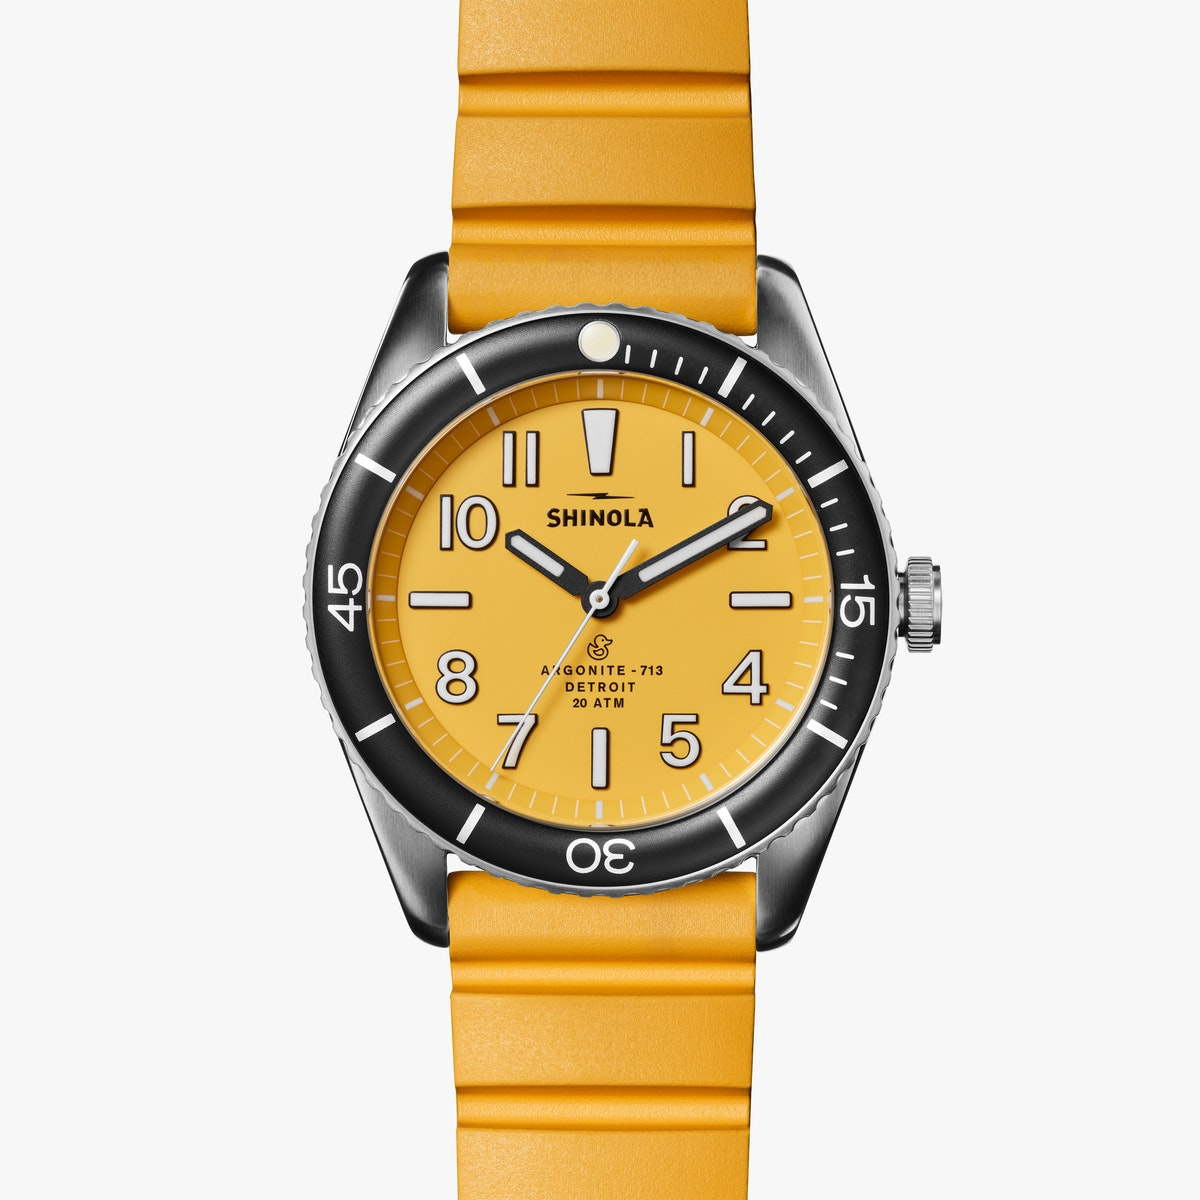 Shinola 'The Duck' 42mm Watch in Canary Yellow